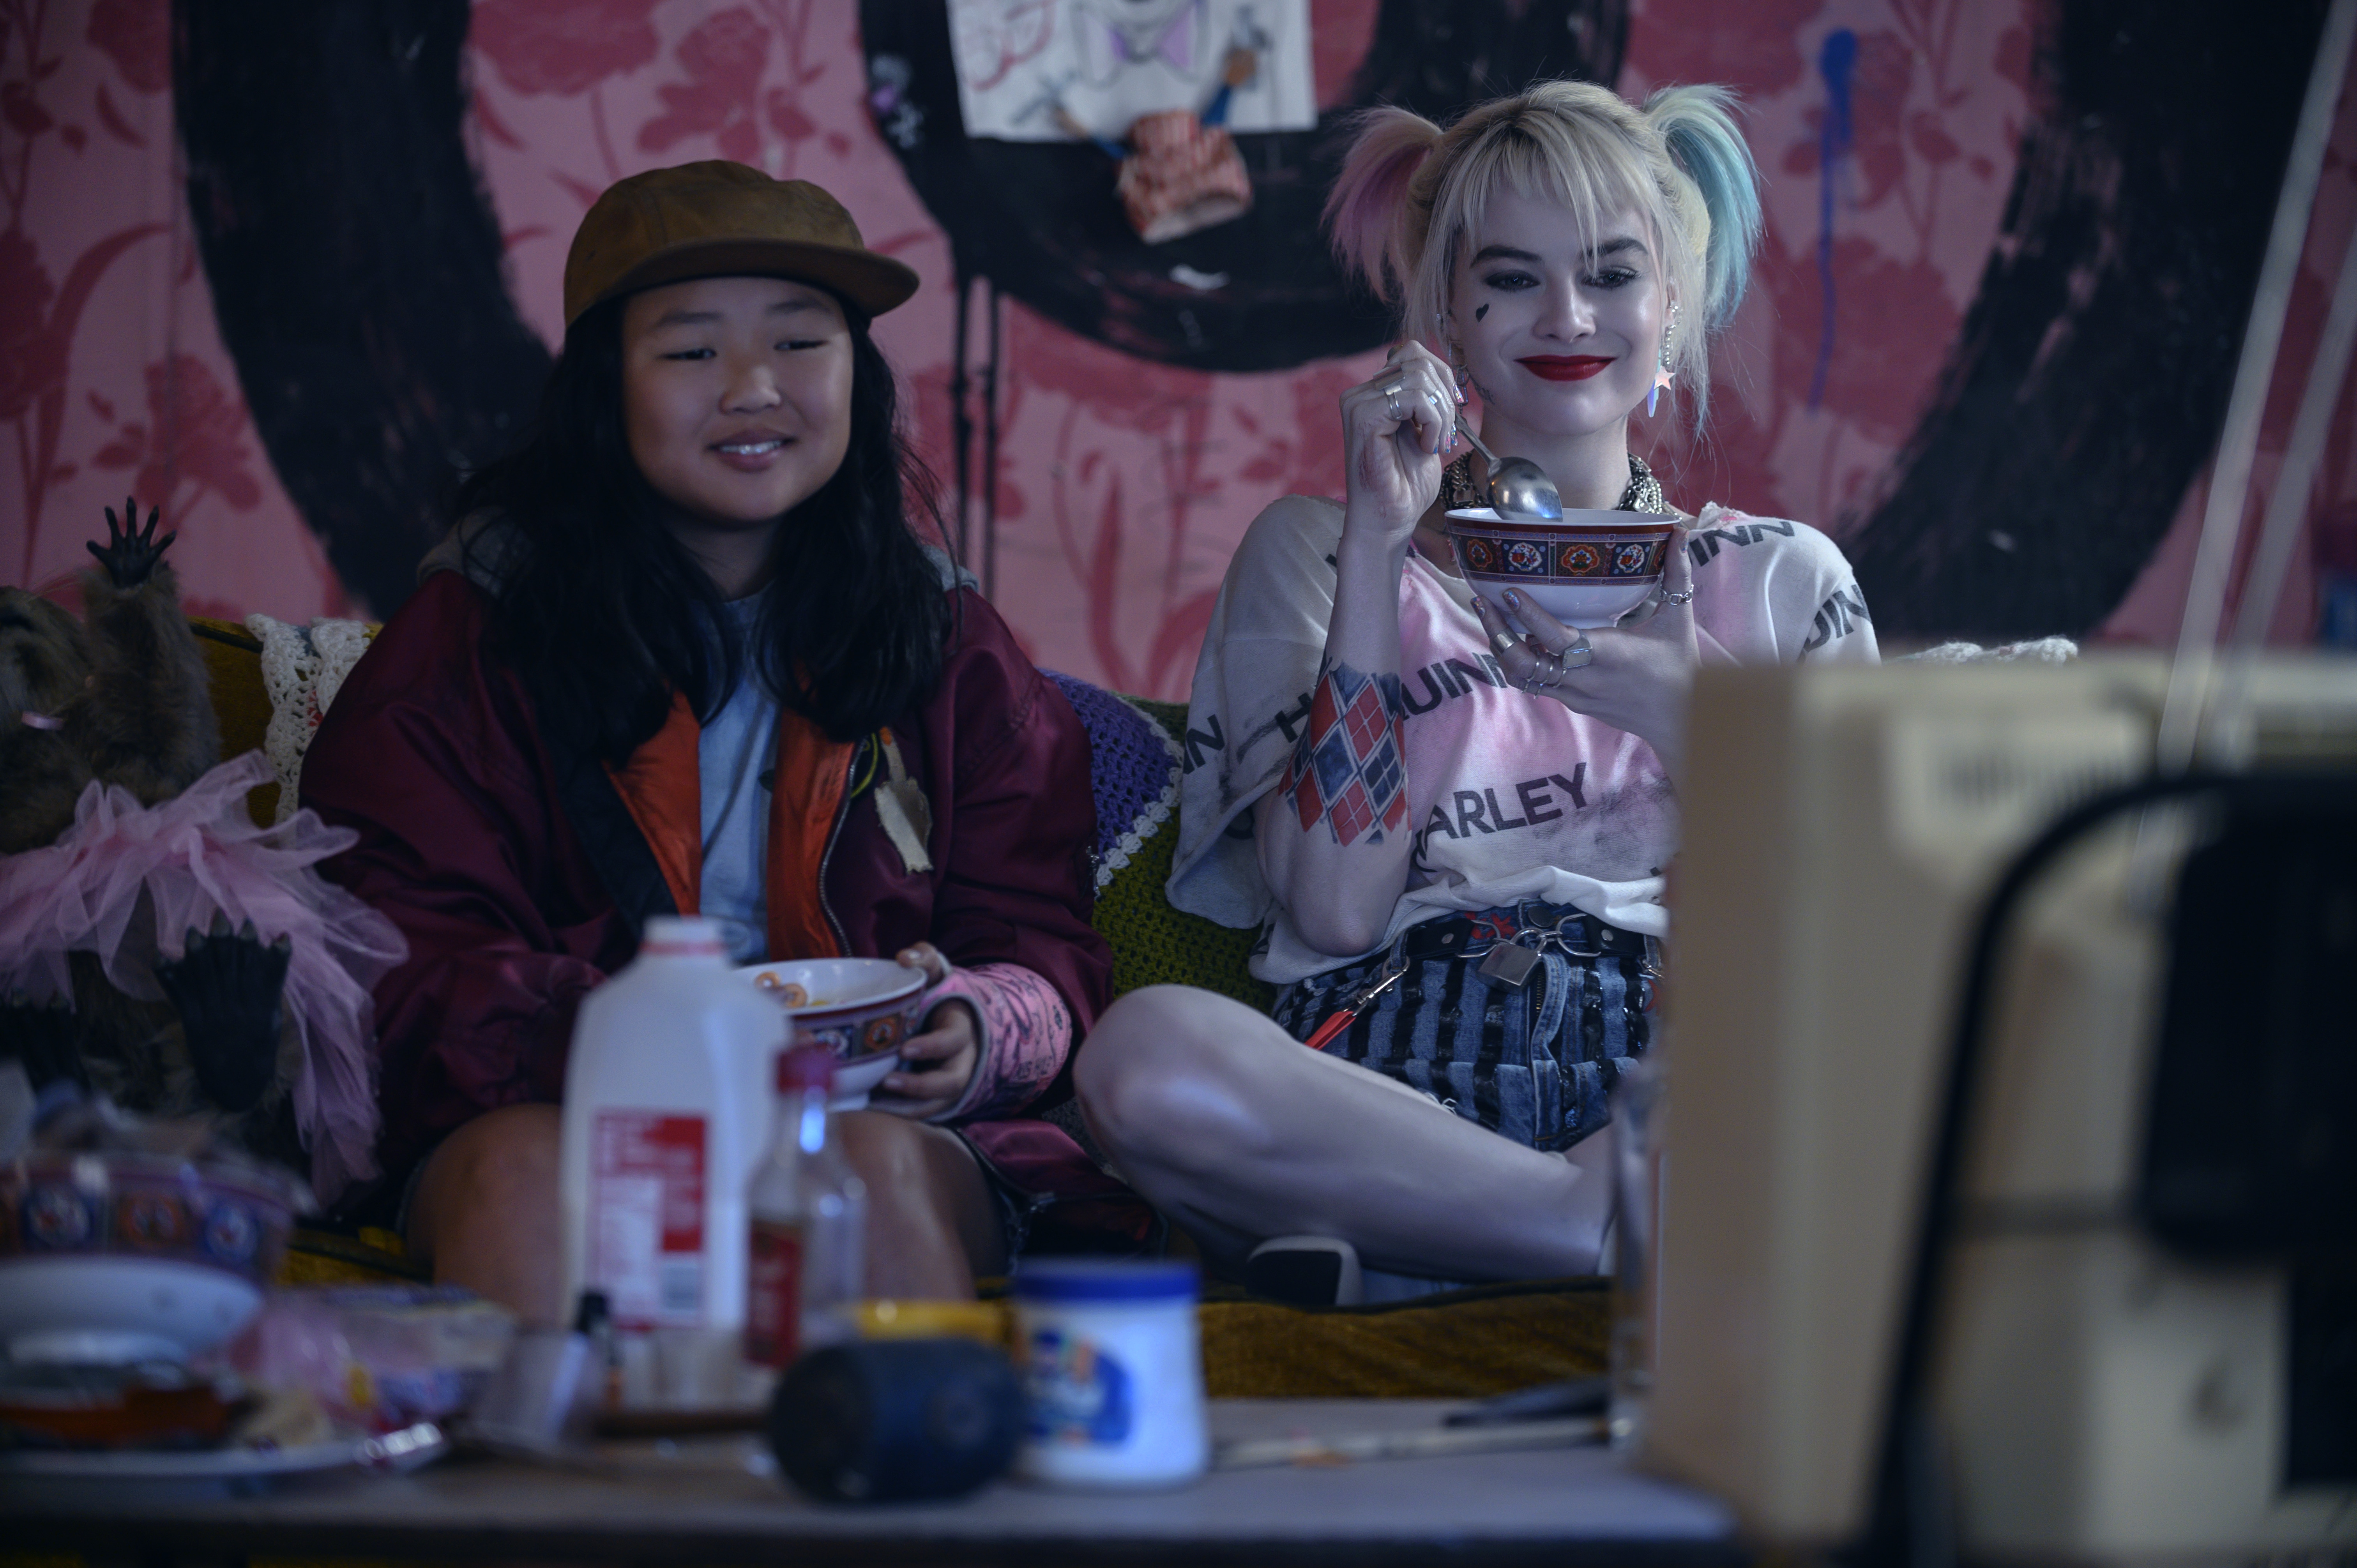 """Margot Robbie as Harley Quinn and Ella Jay Basco as Cassandra Cain in Warner Bros. Pictures' """"Birds of Prey (And the Fantabulous Emancipation of One Harley Quinn)."""